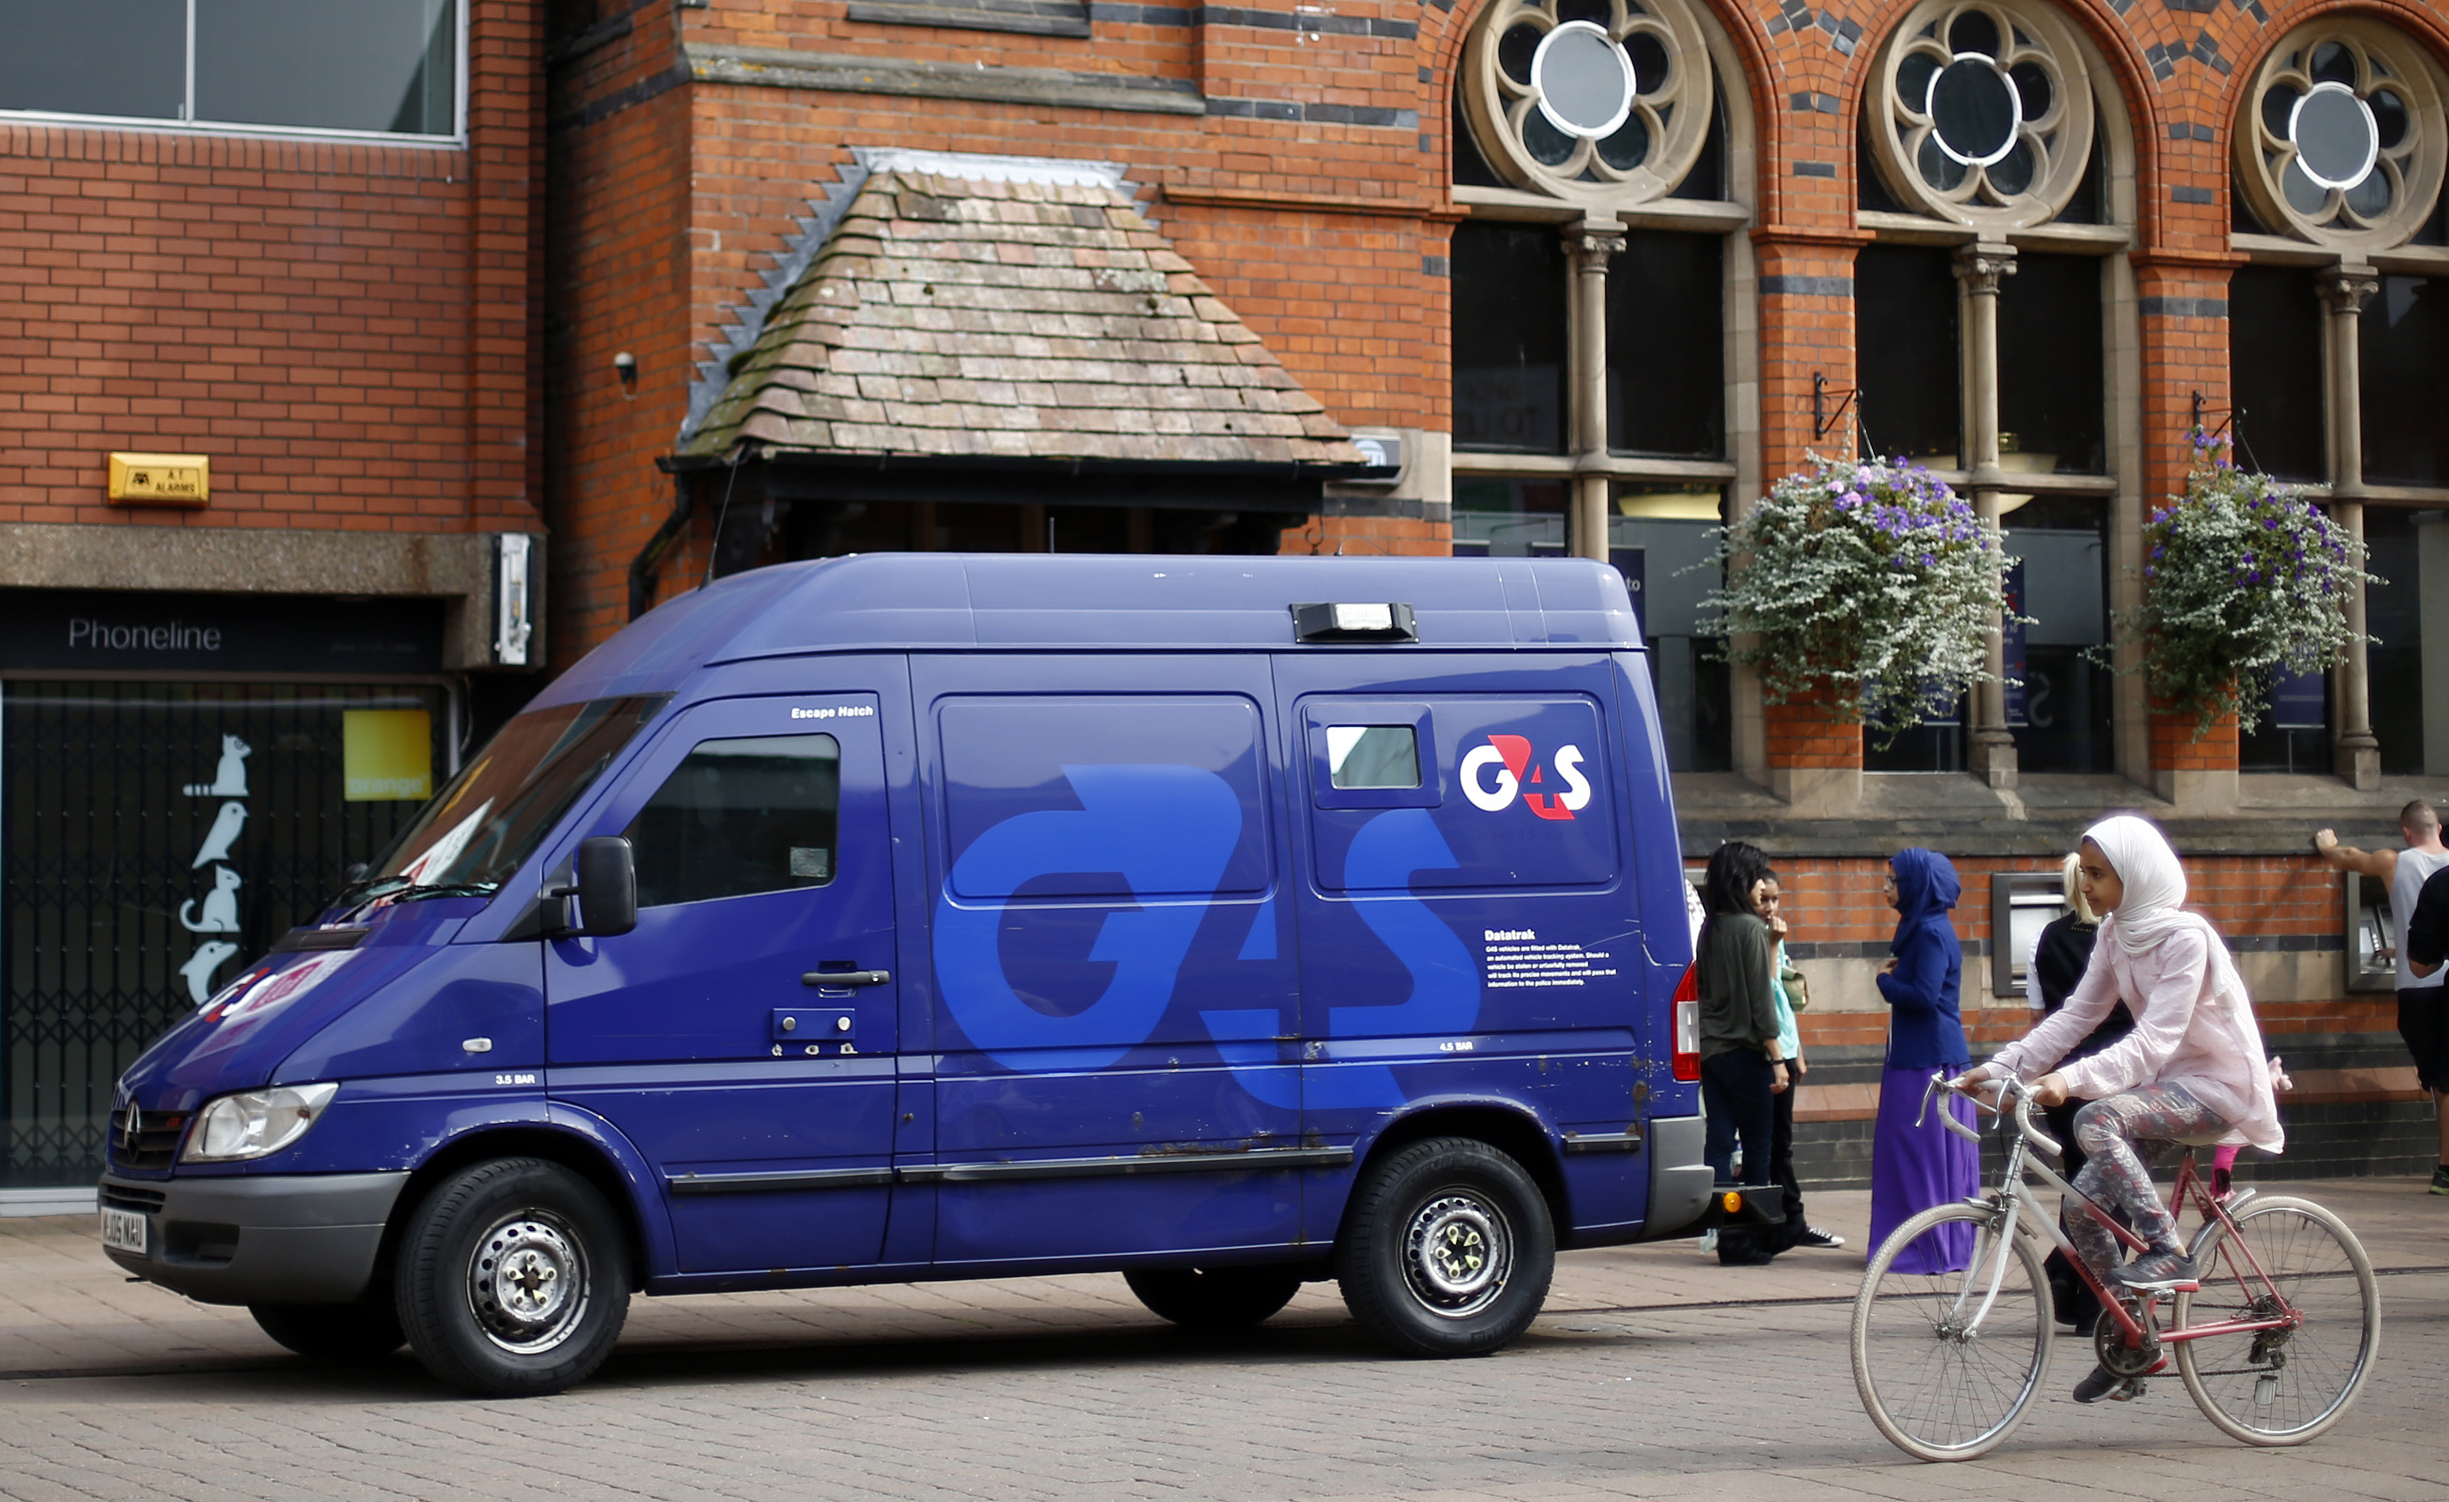 G4S security van is parked outside a bank in Loughborough, central England, August 28, 2013. REUTERS/Darren Staples/File Photo